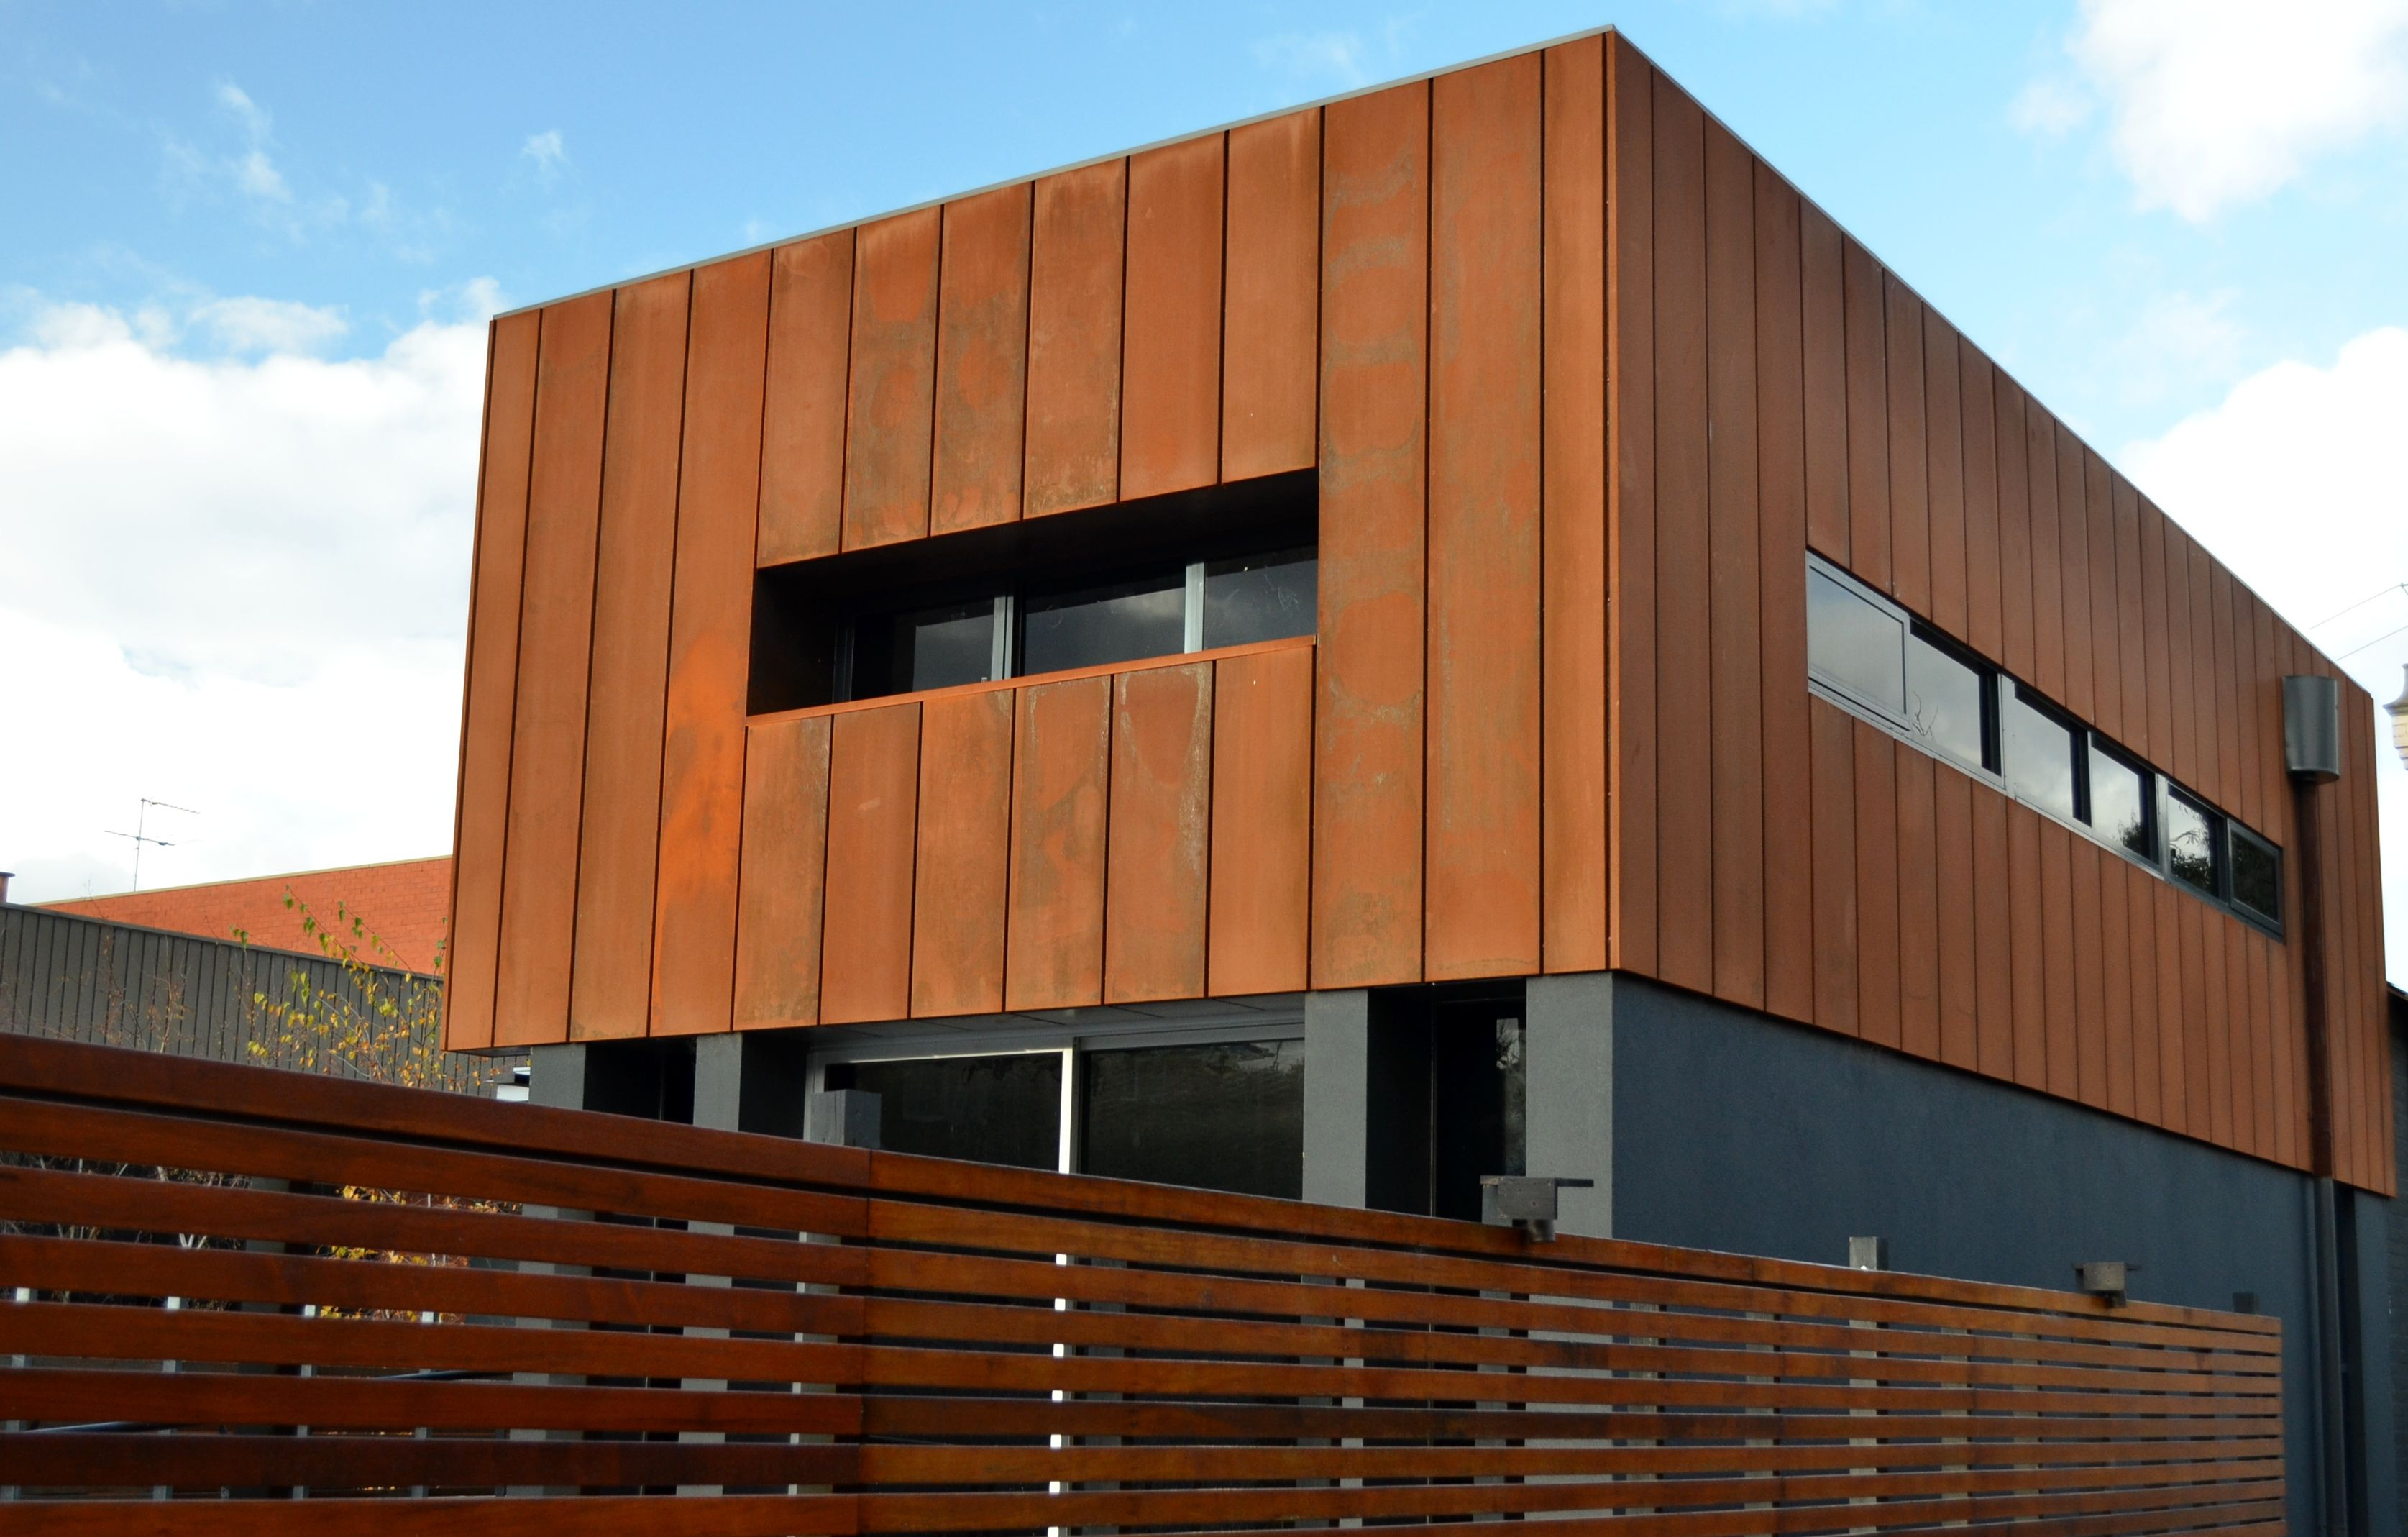 Cassette Panel Corten Steel Cladding Cladding Systems